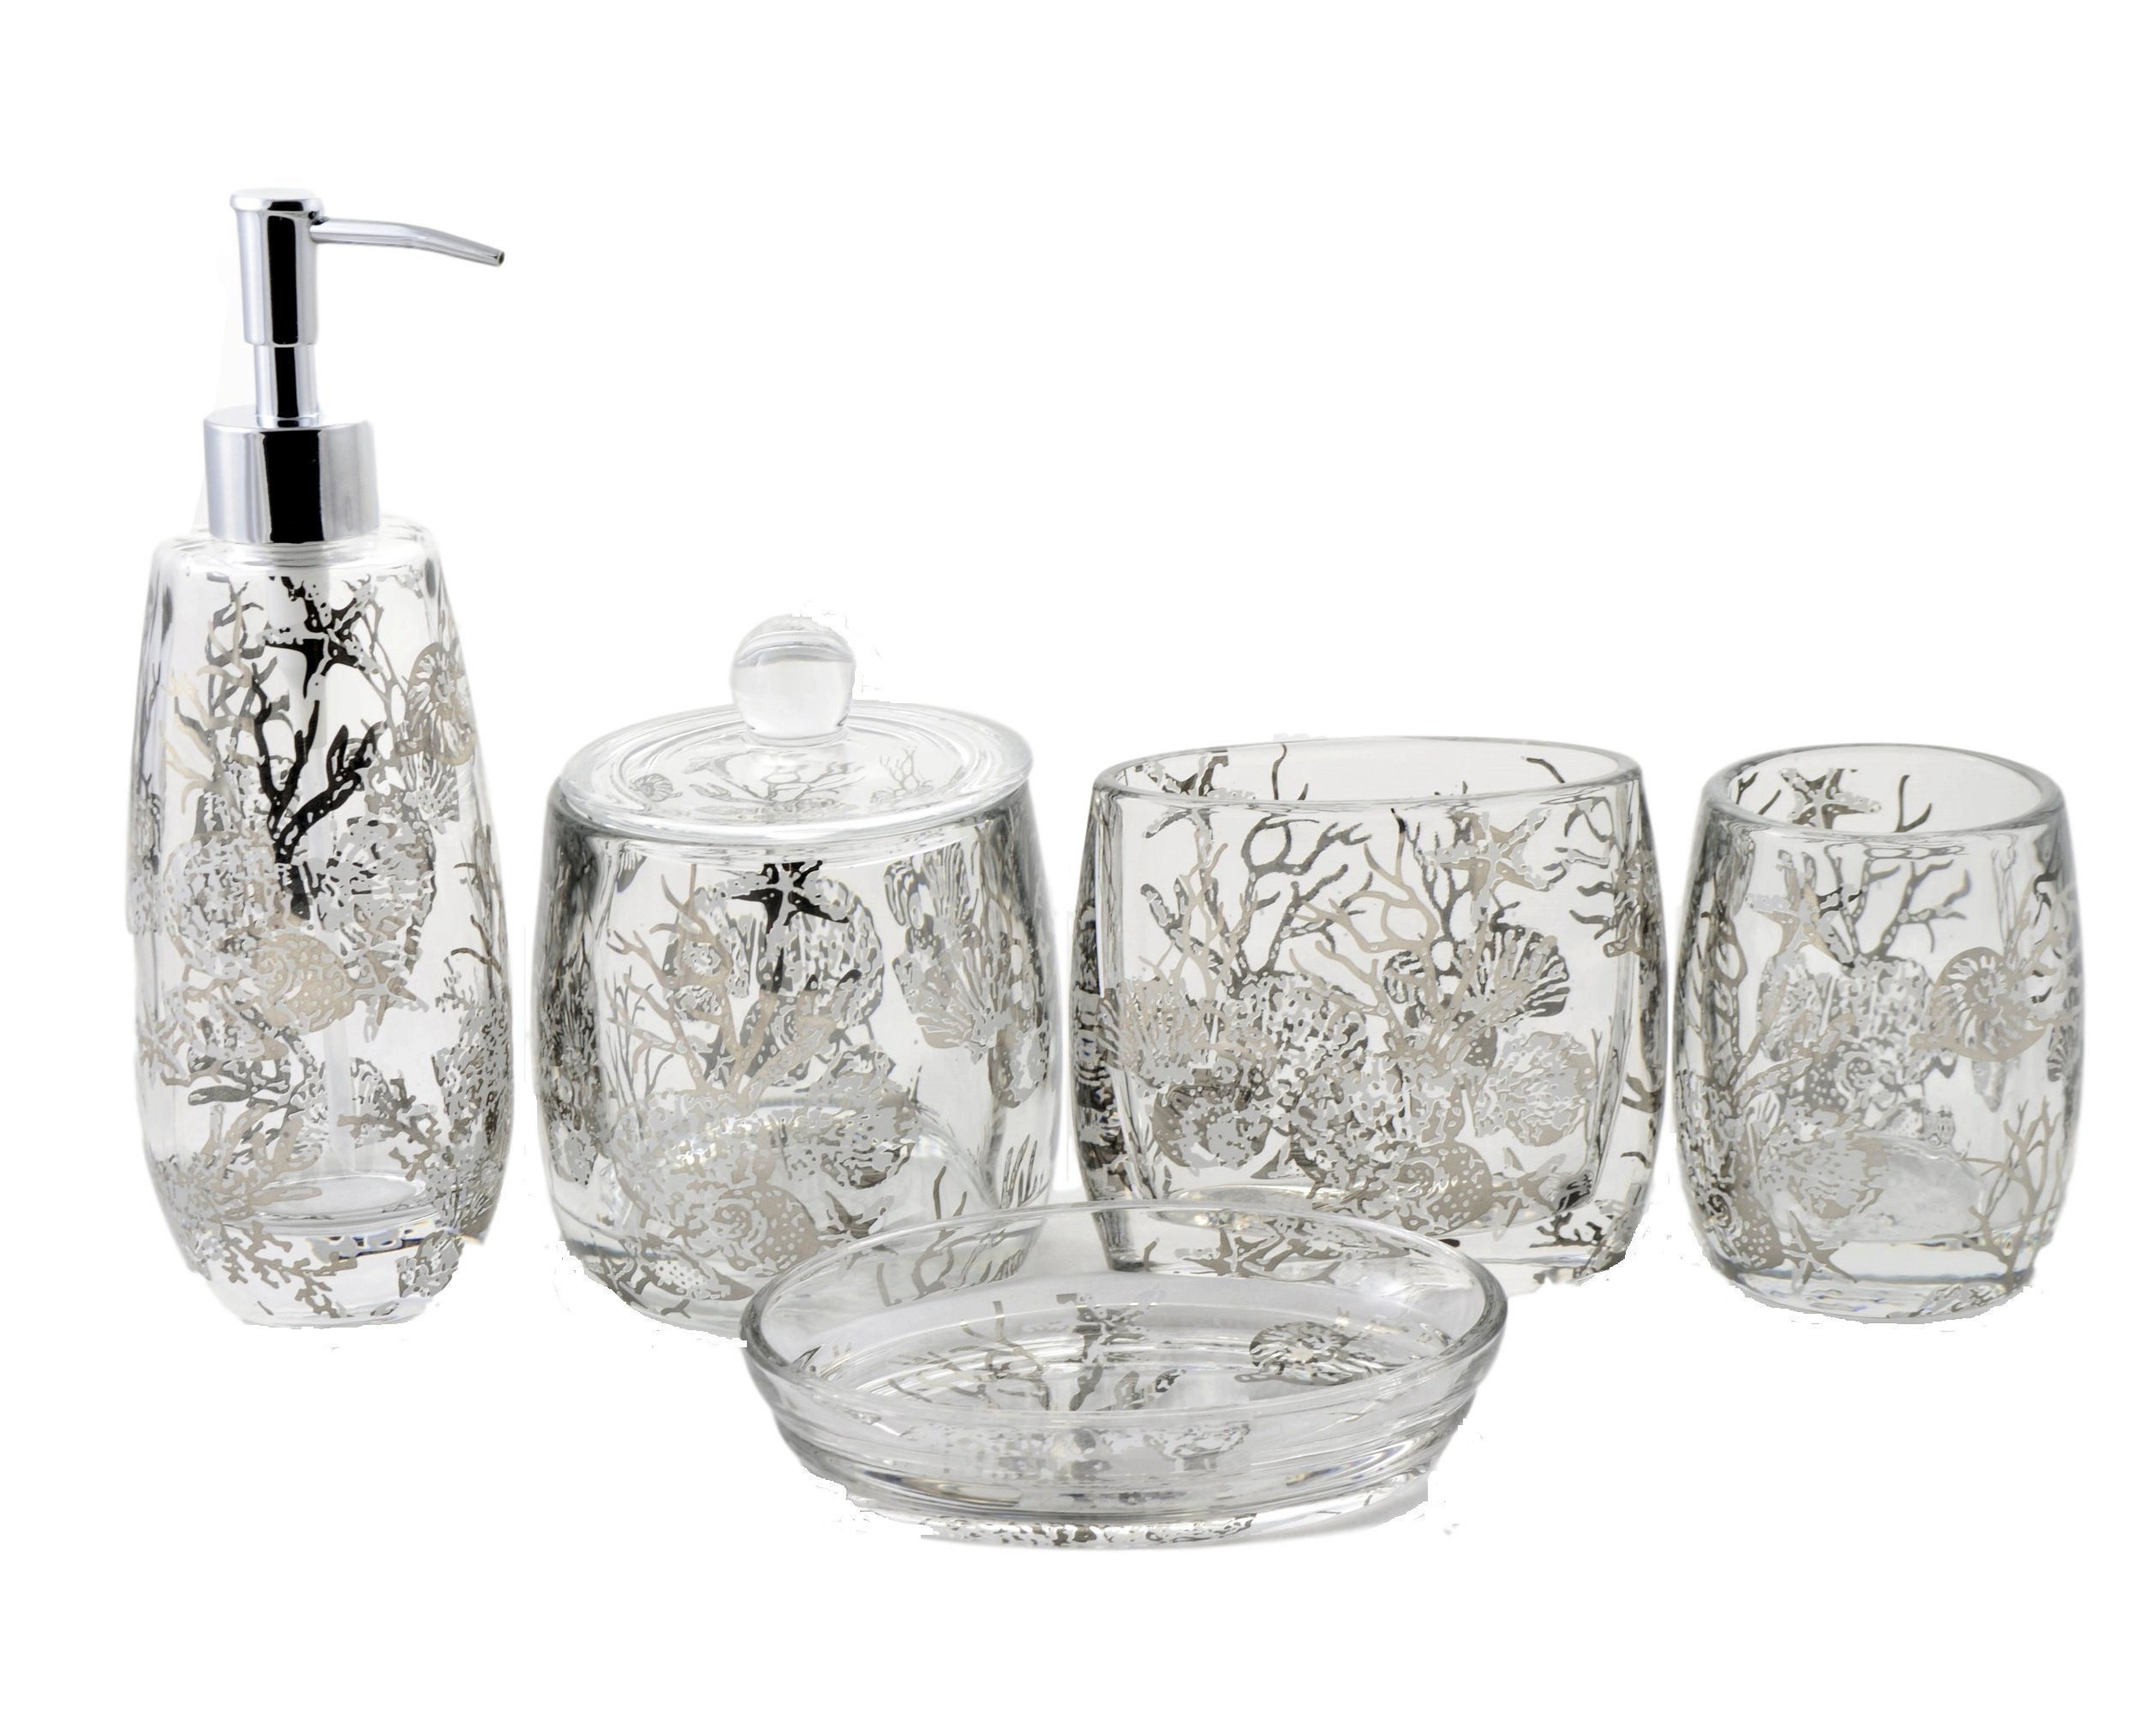 Nature Home Decor Model 375-12349 Glass Bath and Spa Accessories Set of Antlers Collection